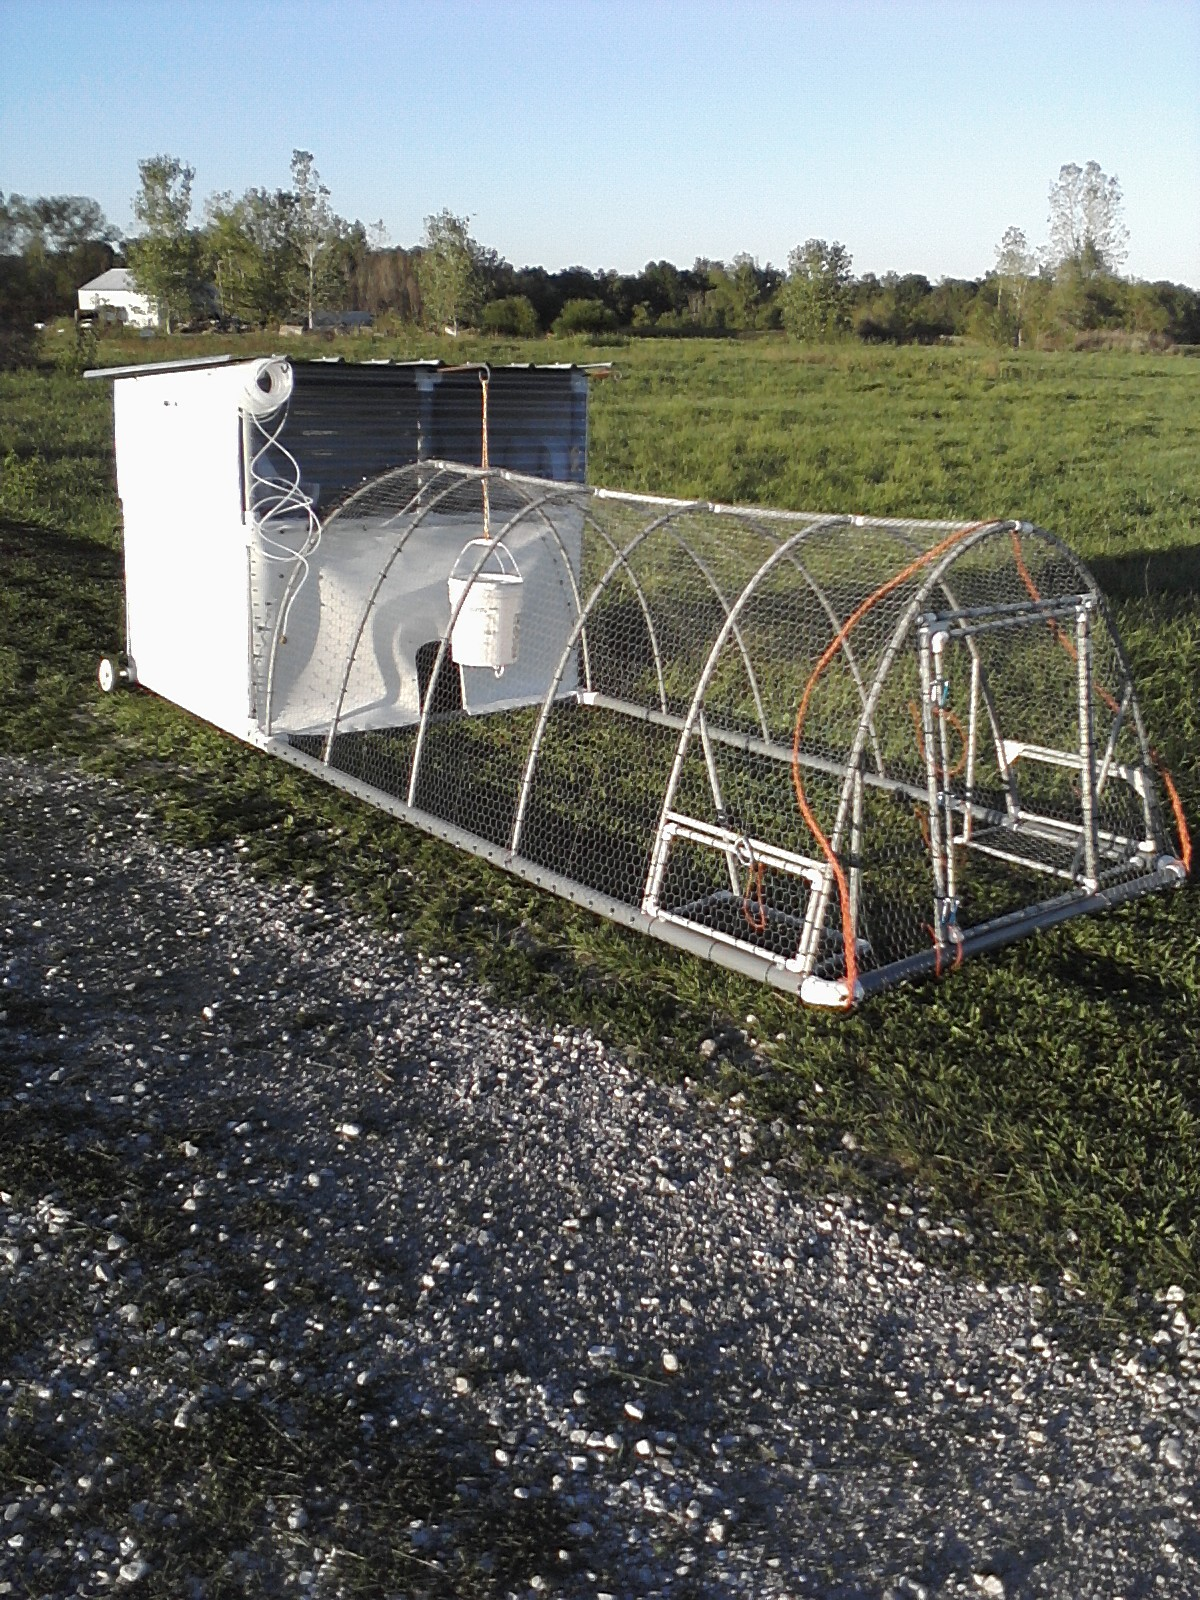 Build Pvc Chicken Tractor : Chicken tractor good design practices lewis family farm